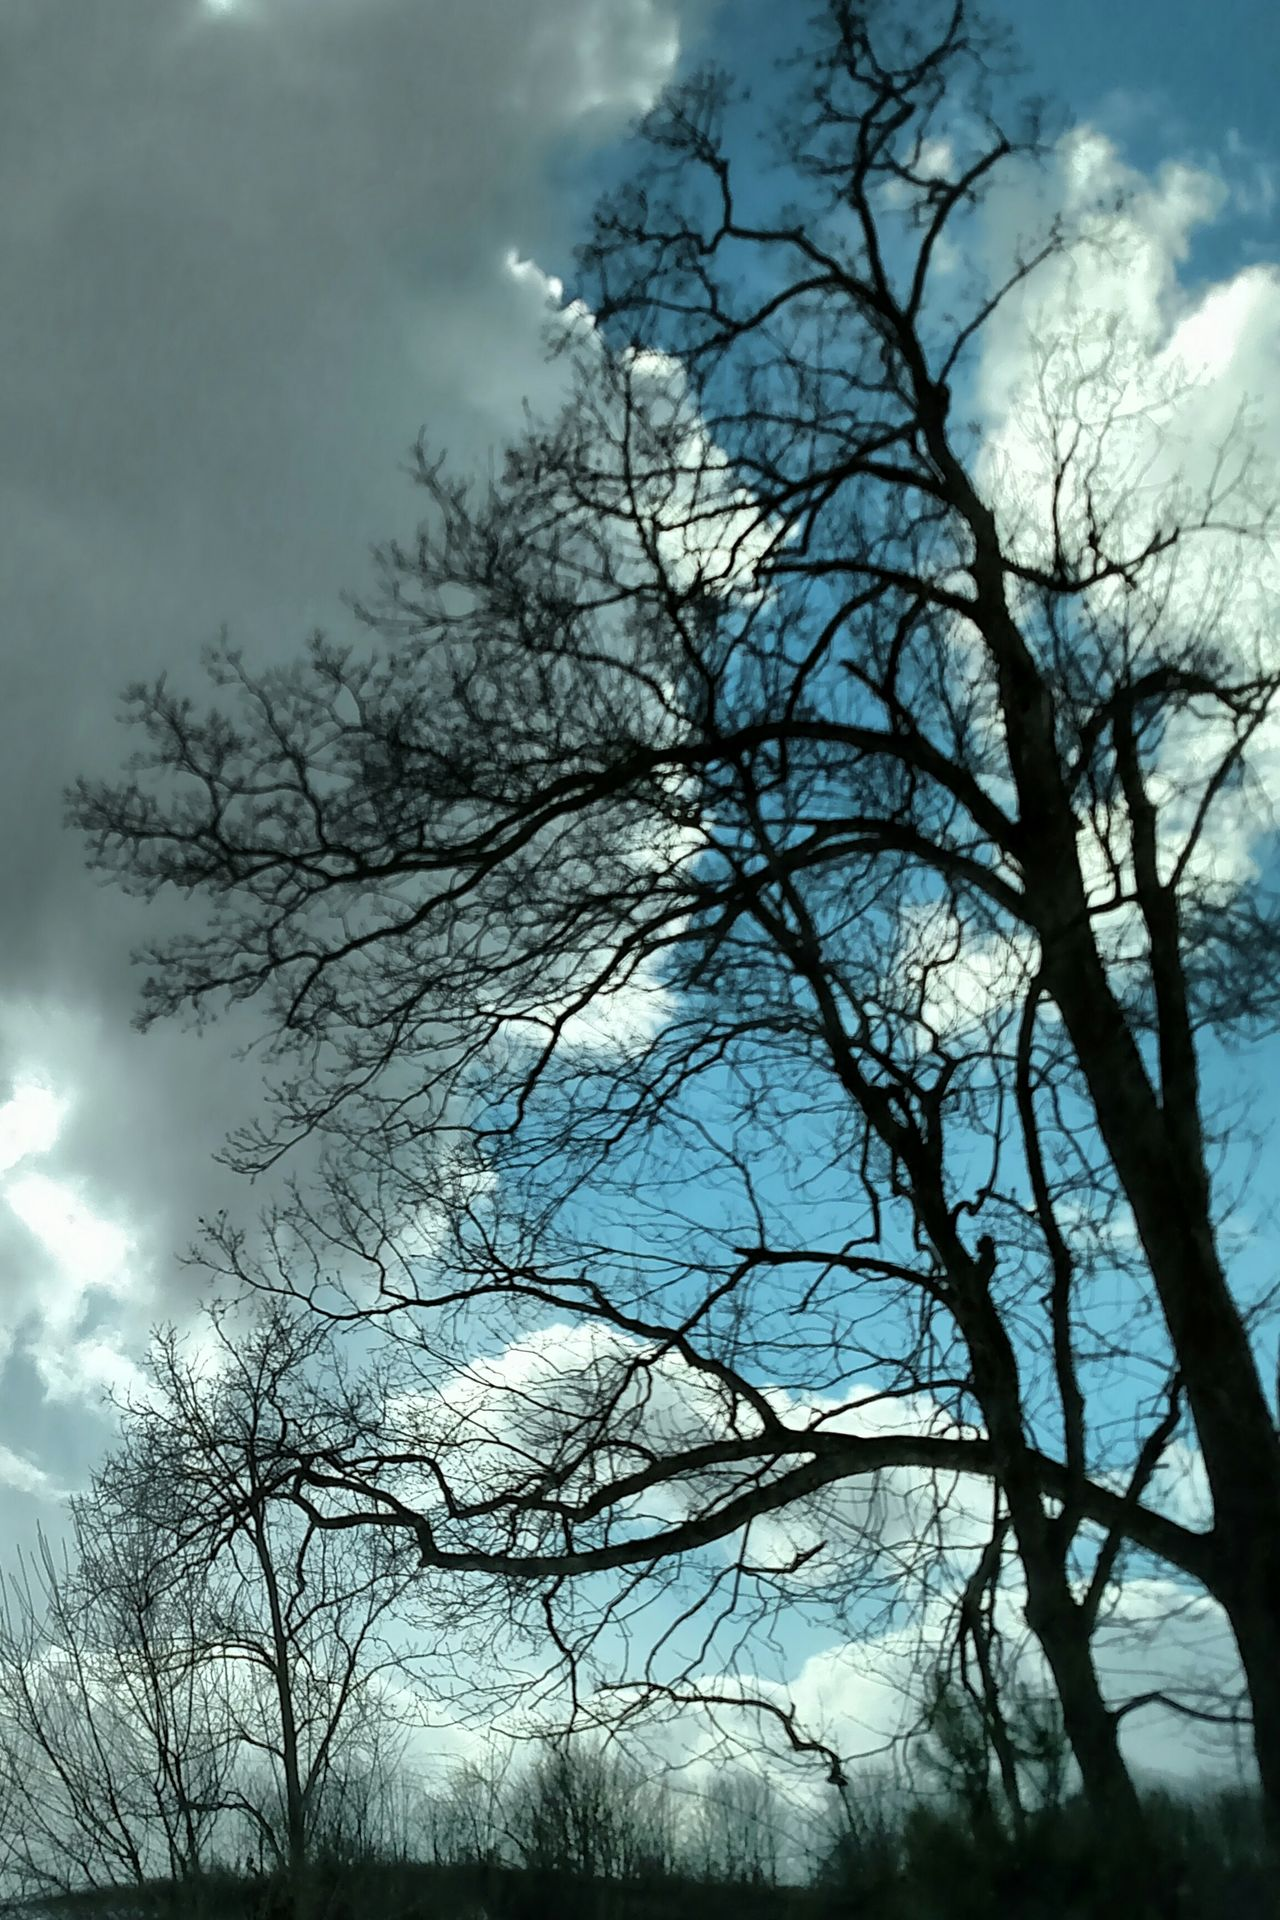 The Purist (no Edit, No Filter) Blue Sky Cloudy My Cloud Obsession☁️ Tree Silhouette I Love Bare Trees Todays Weather Report -20 wind chill From My Point Of View From My Lens Beautiful Nature My Perspective Bare Branches Beautiful Sky My Eye To The Sky Sky And Tree Gods Beauty